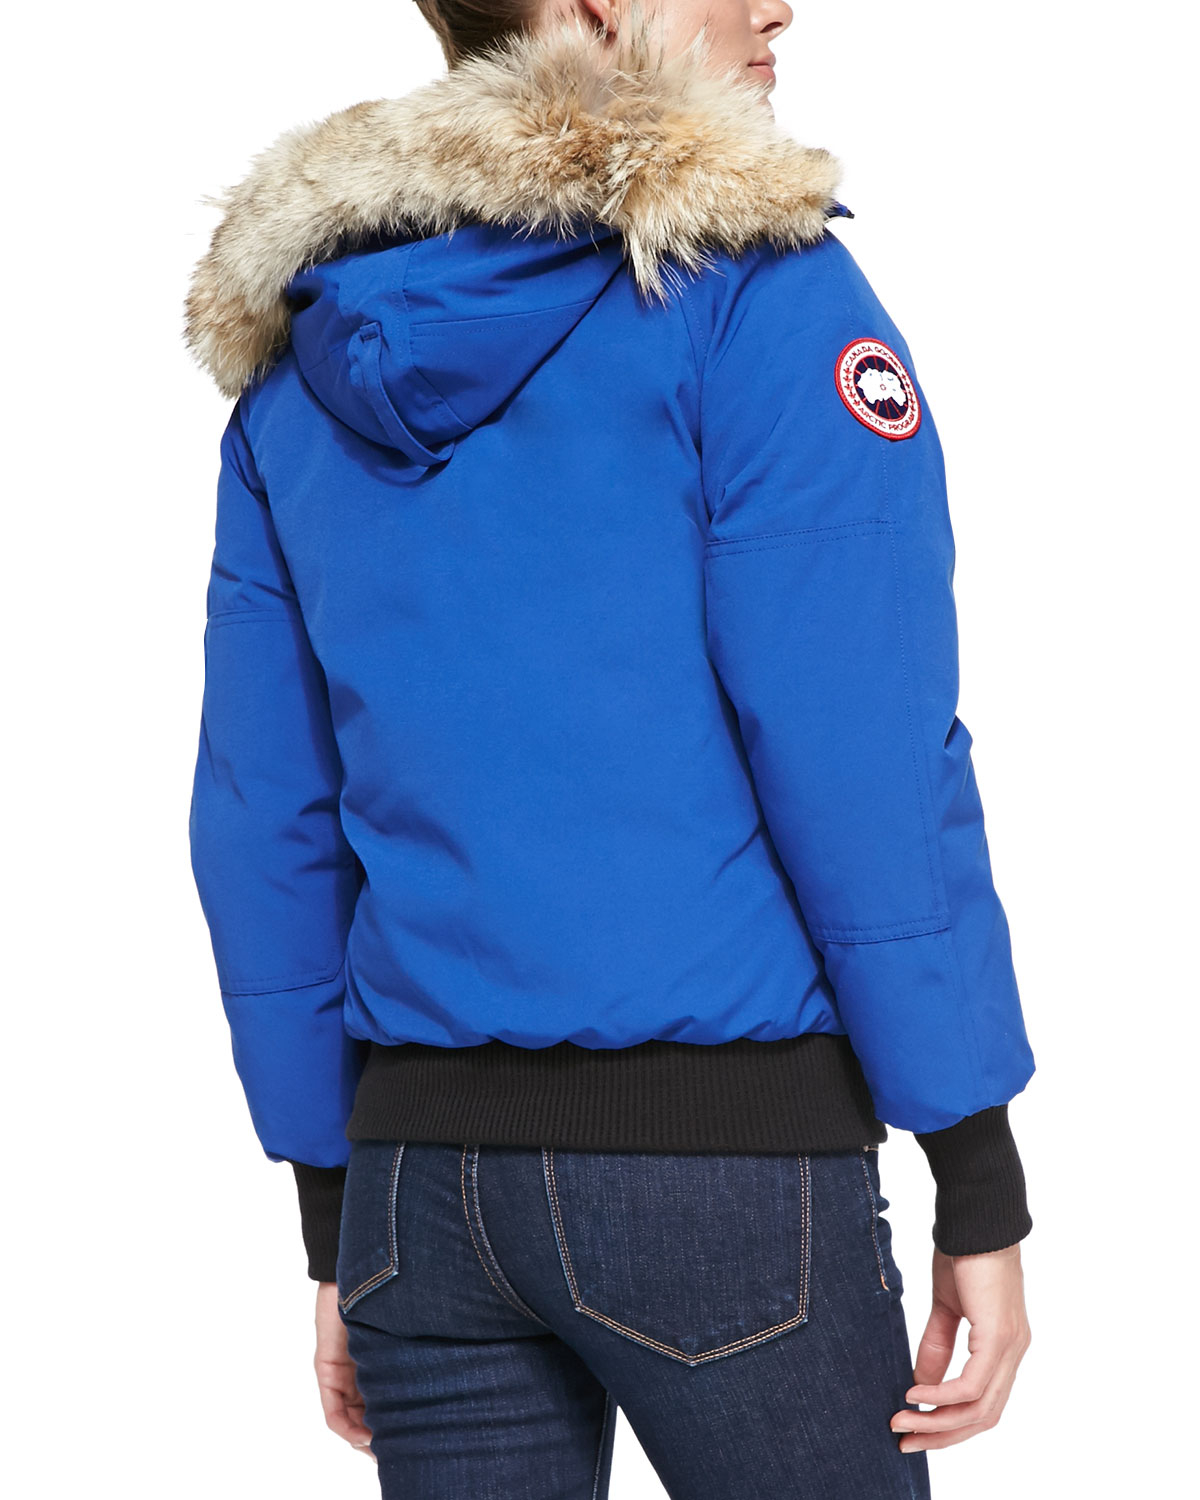 Designer Coats With Fur Hoods Sm Coats